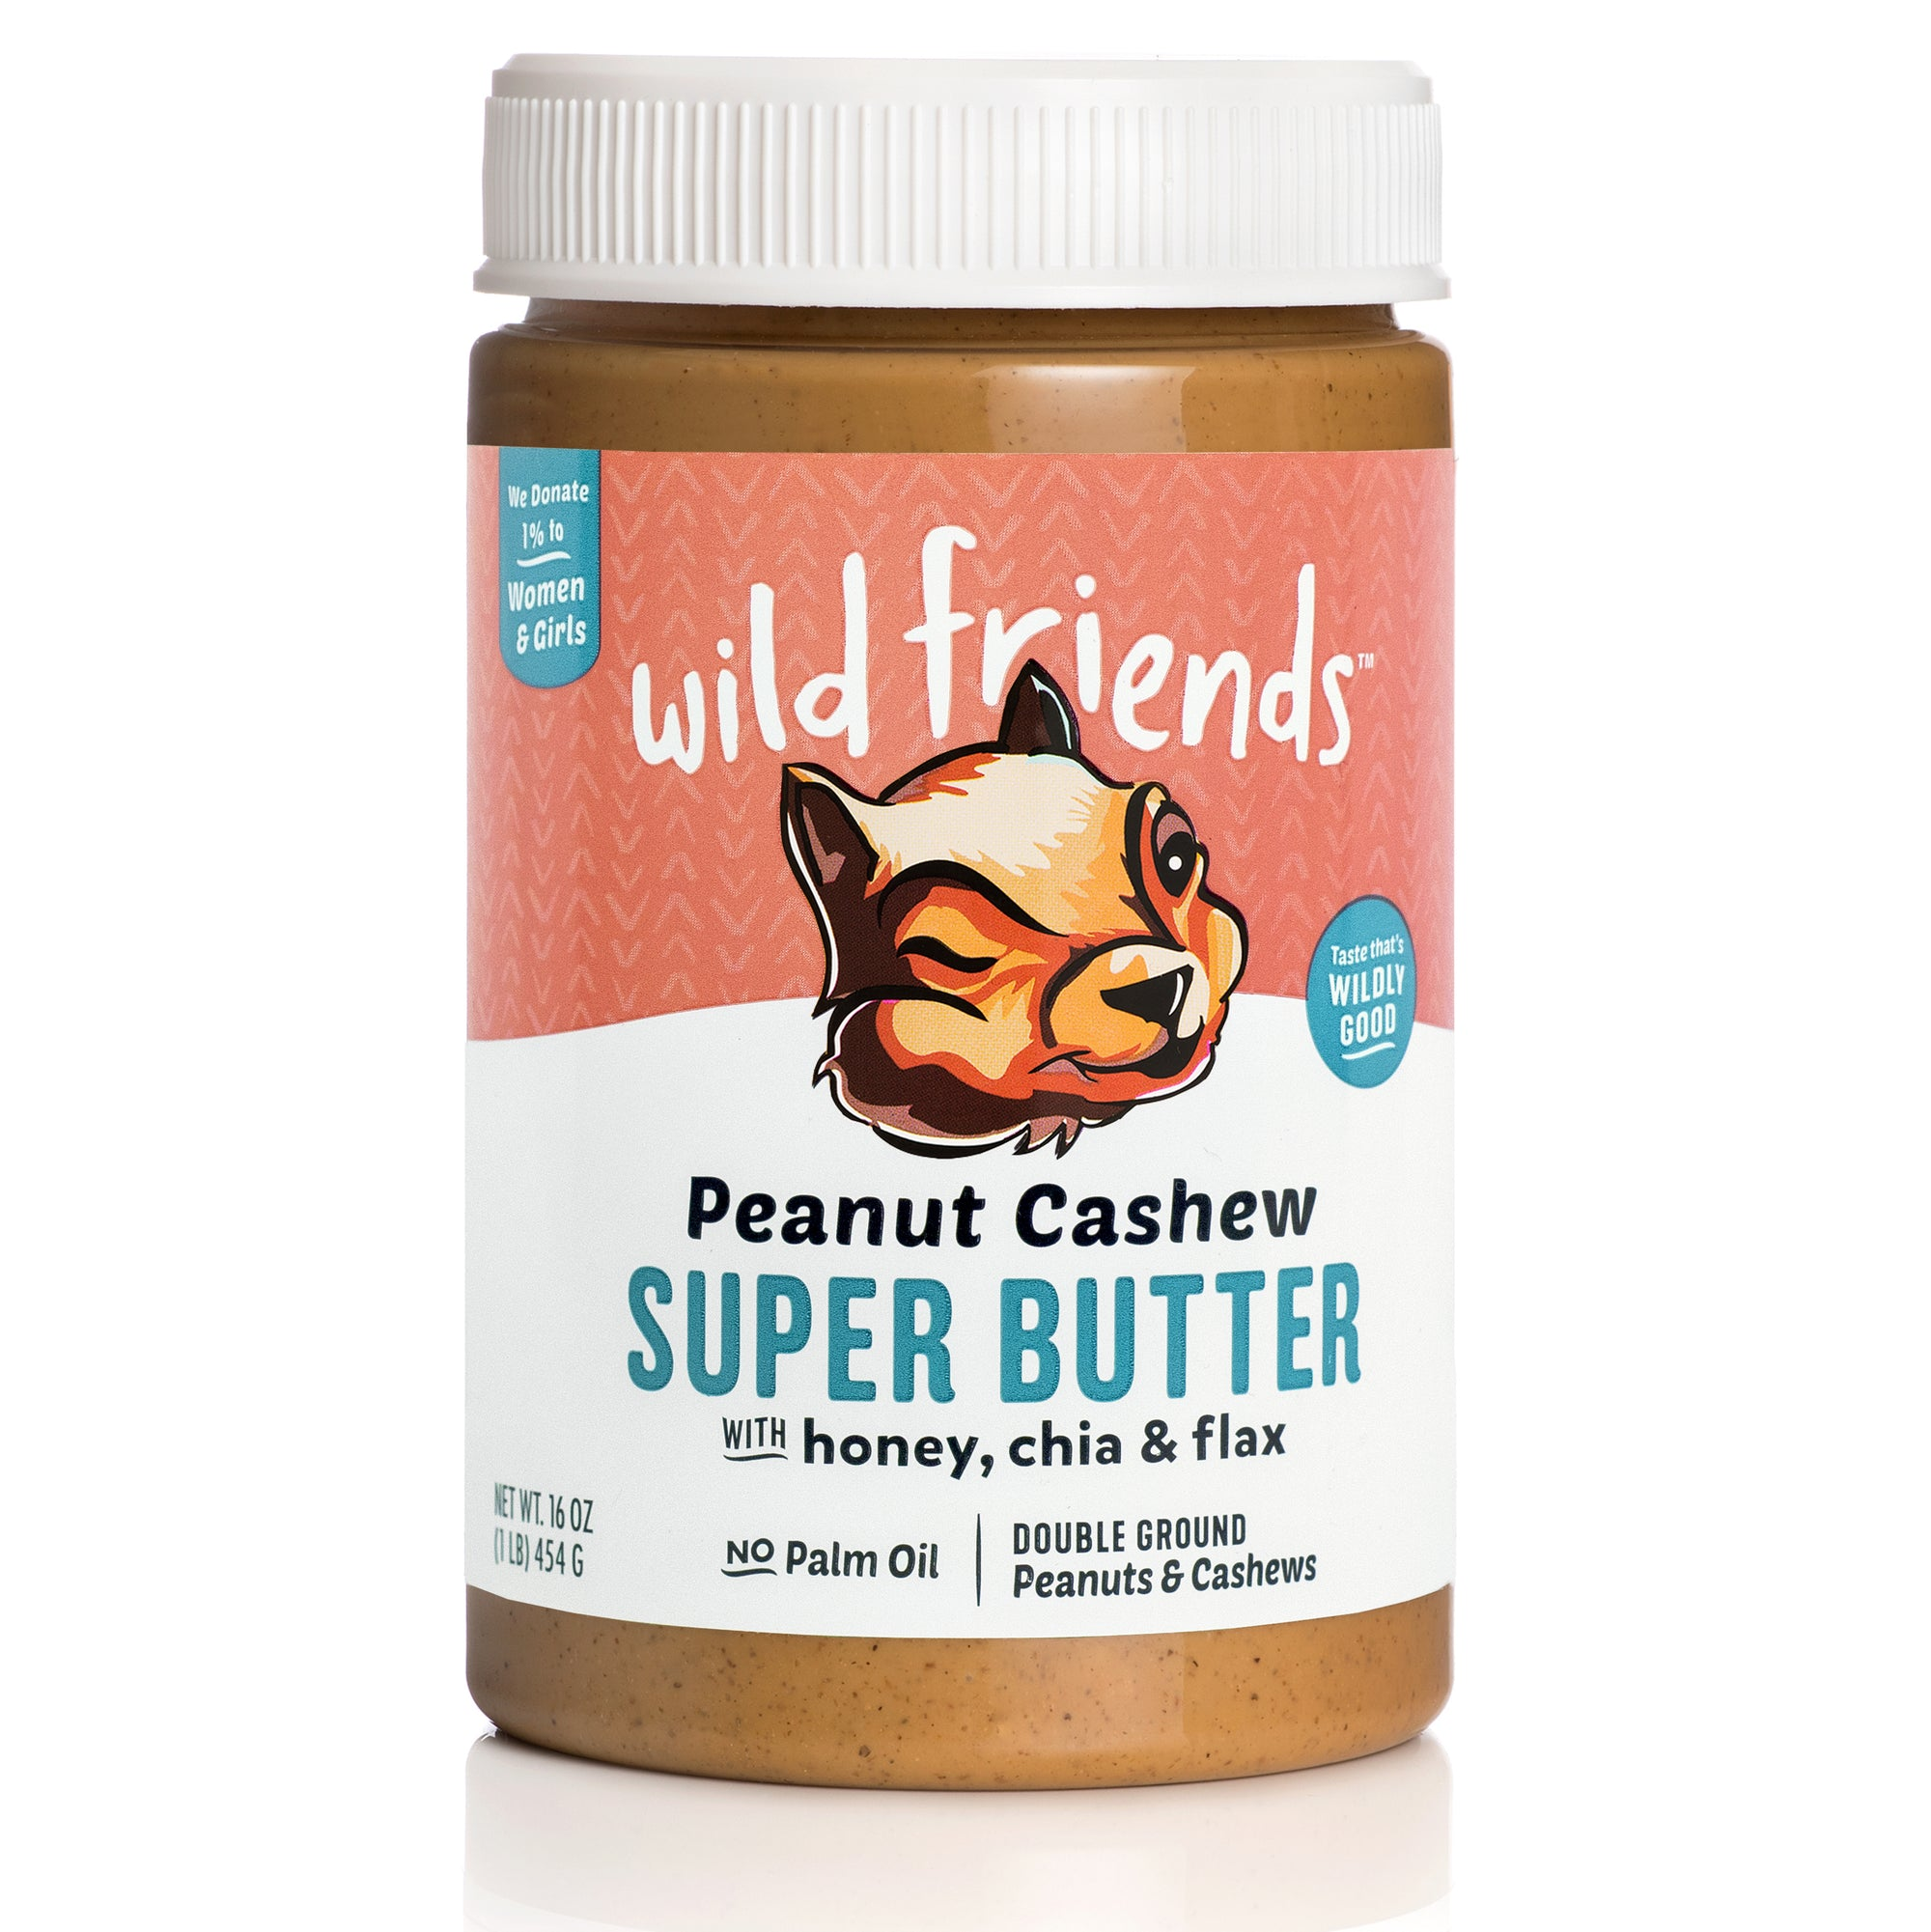 Peanut Cashew Super Butter - Single Jar